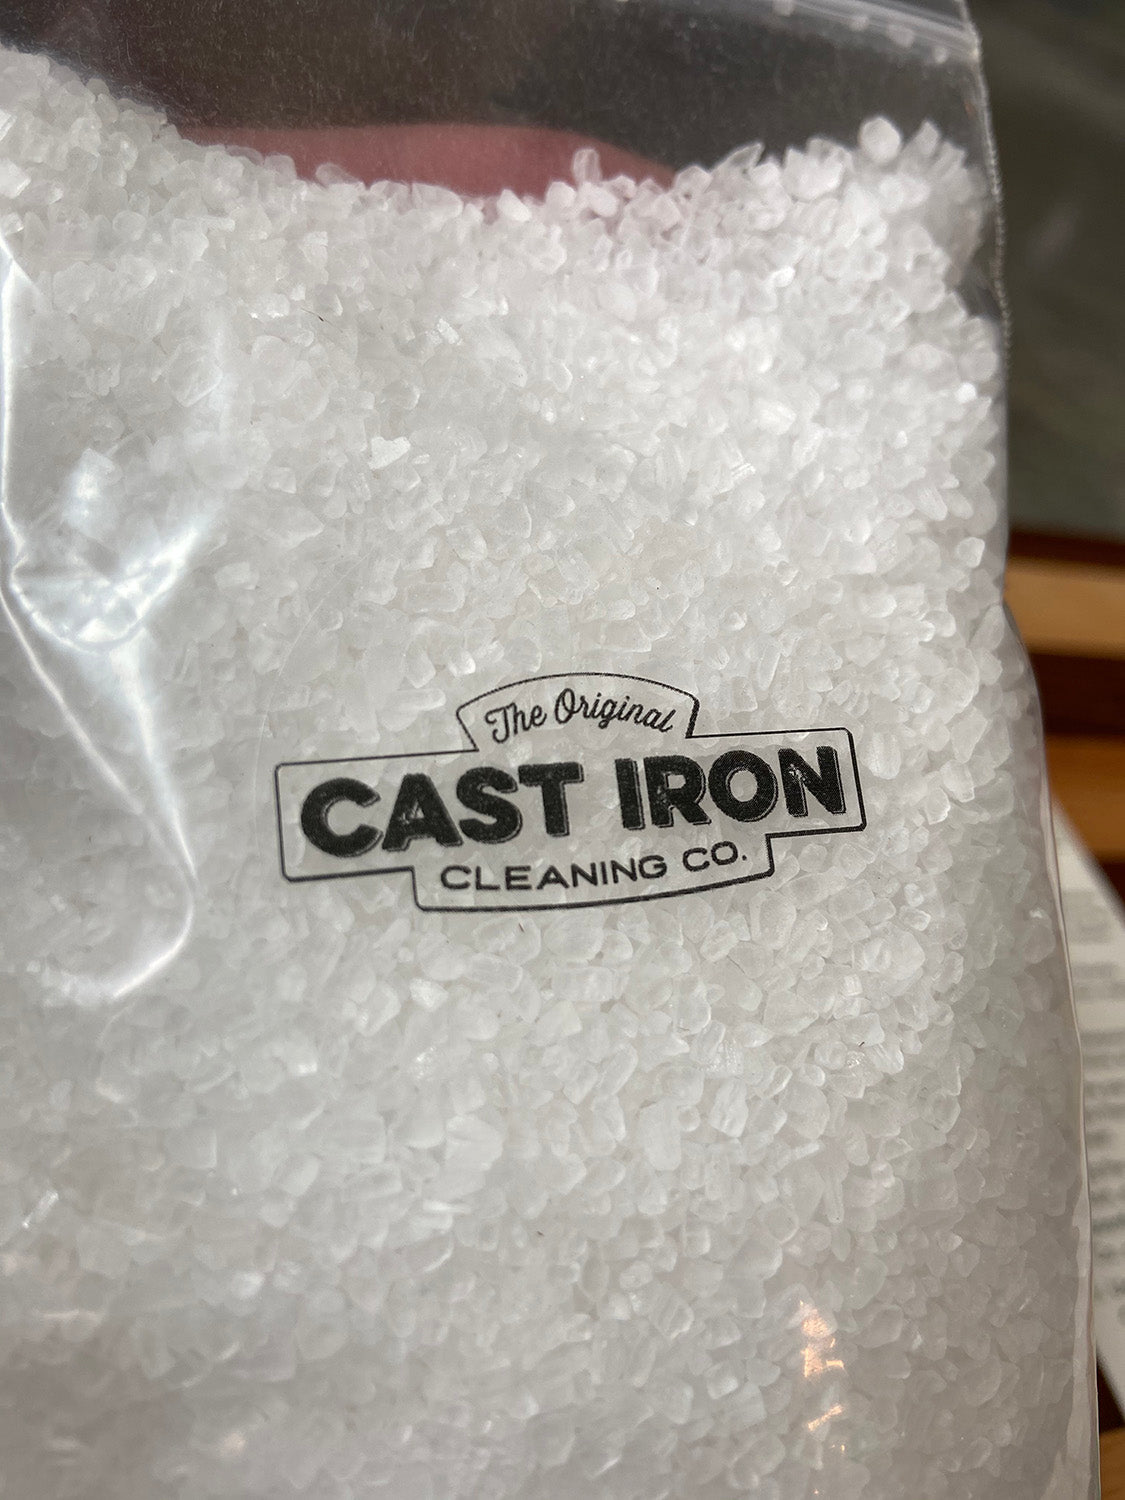 Clean cast iron with salt